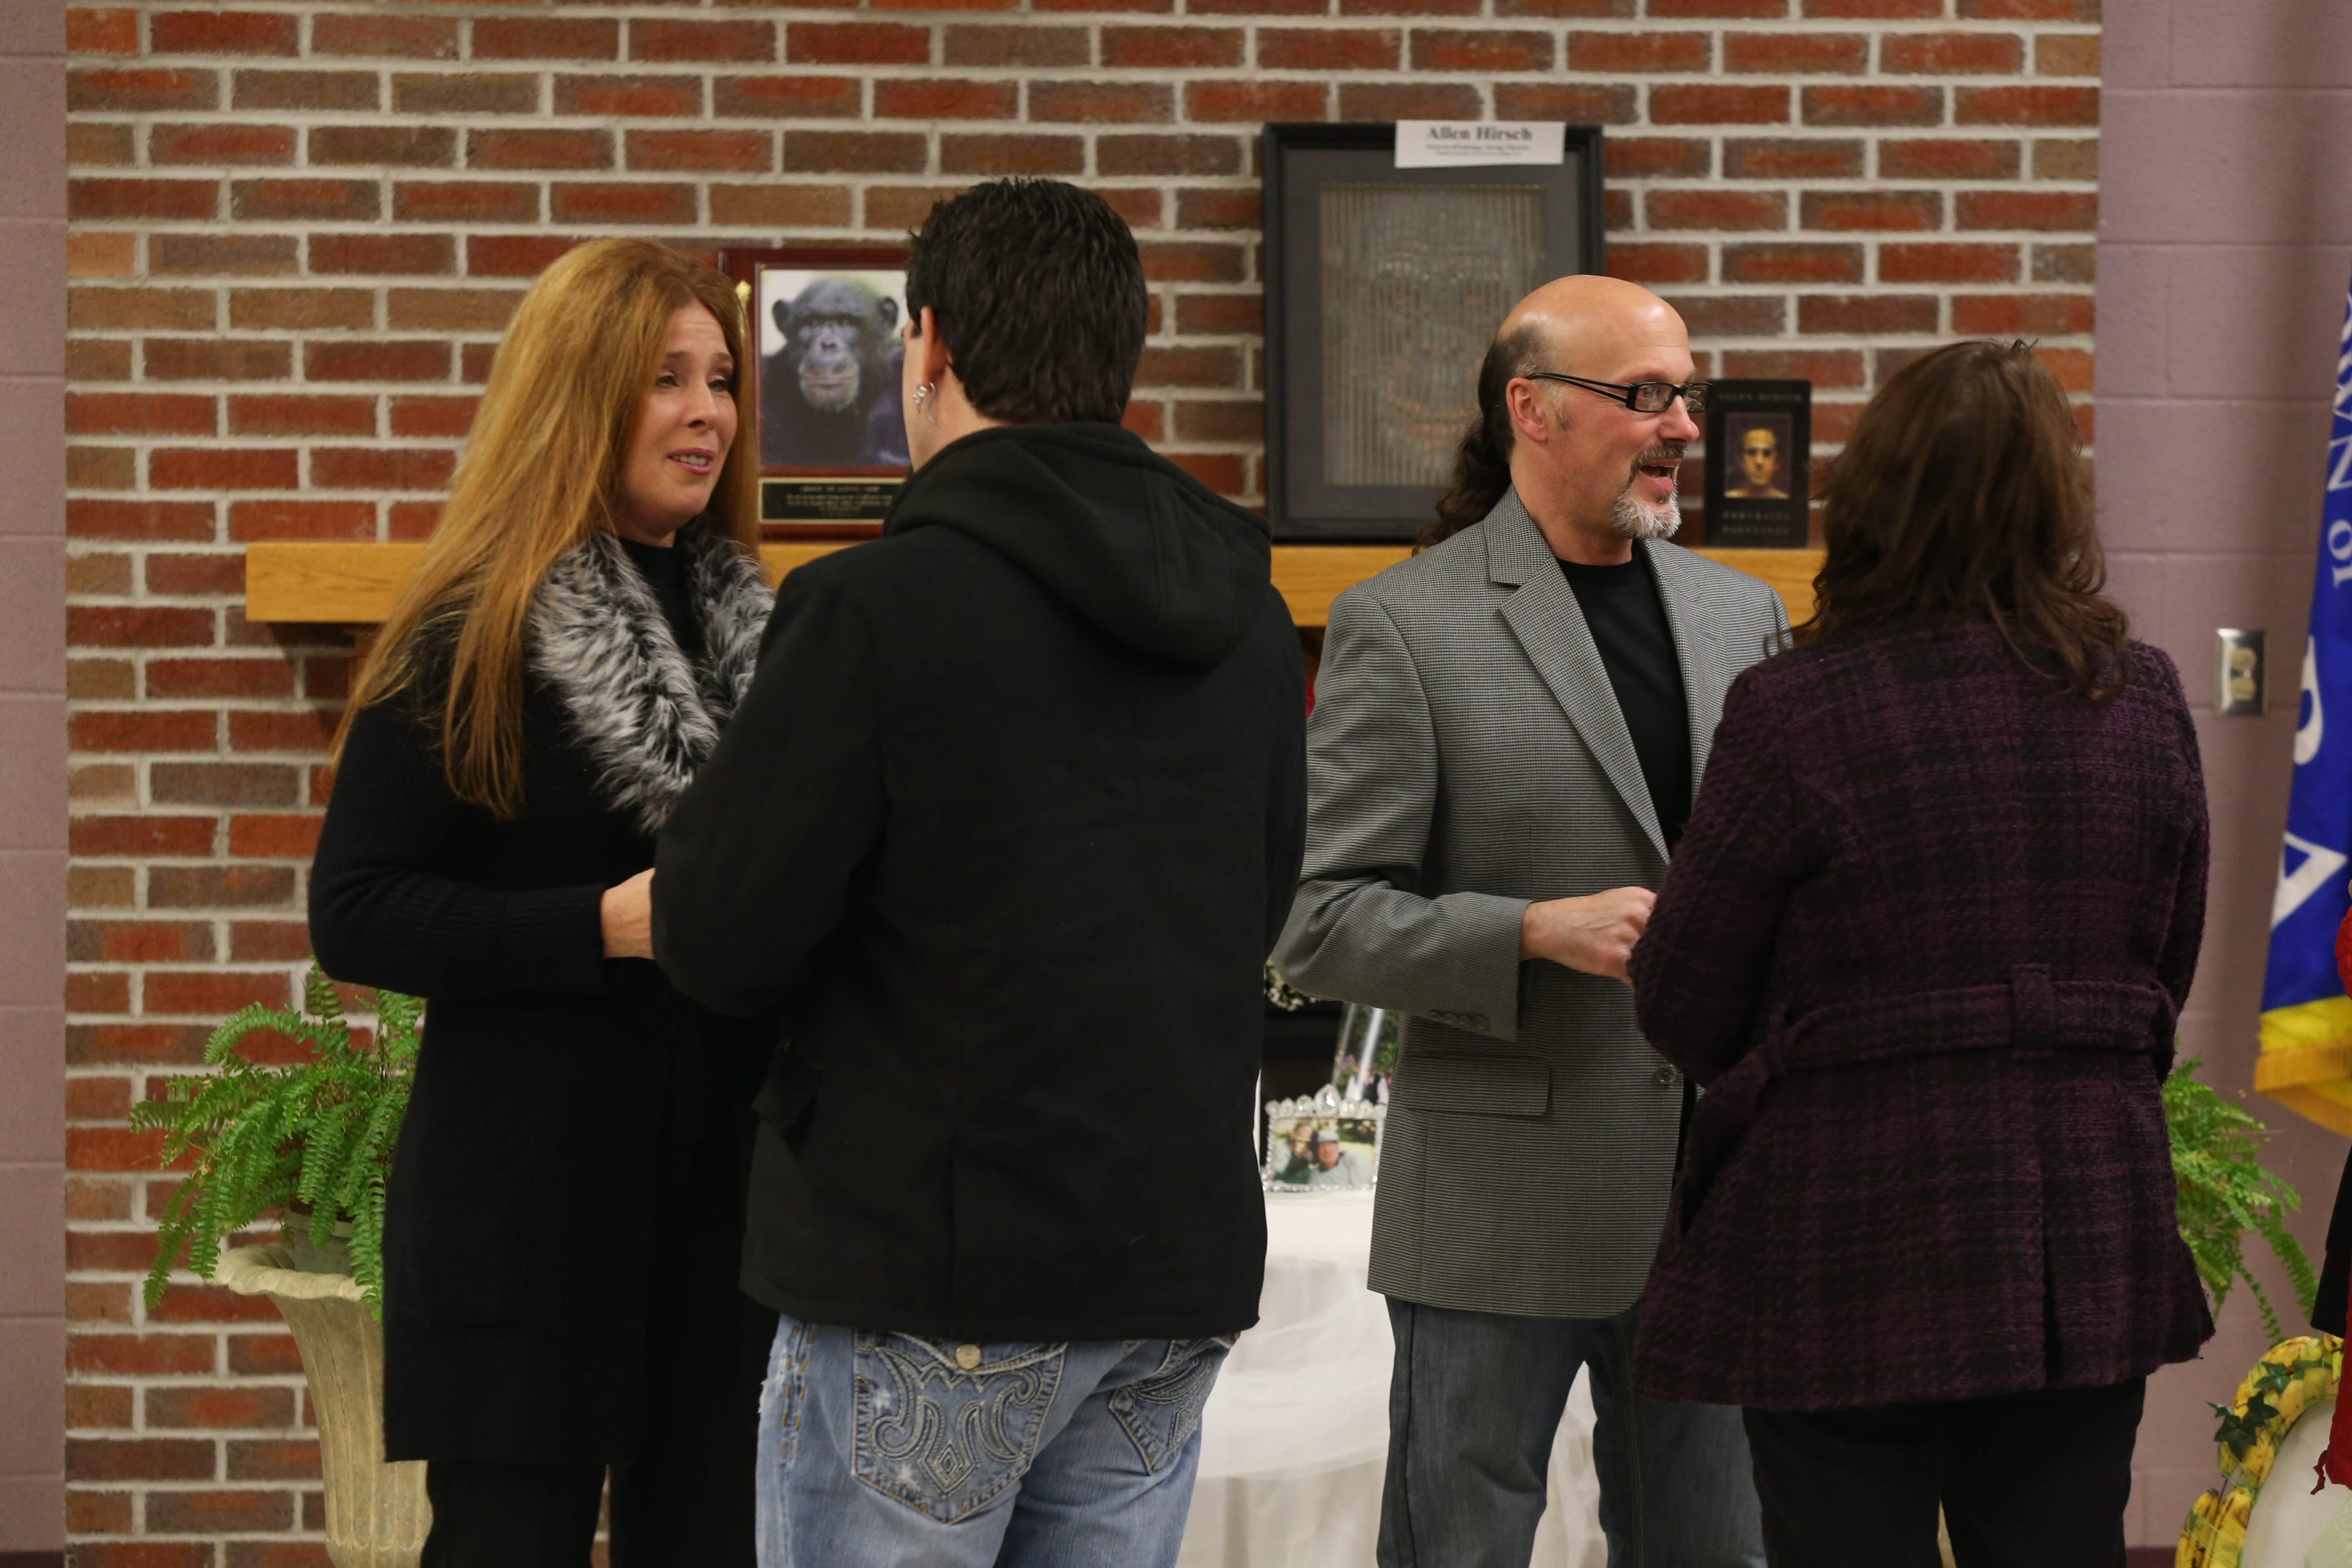 Carmen and Christie Presti receive well wishers at a memorial service for Charlie the Chimp at the Town of Niagara Senior and Youth Activity Center in Niagara Falls on Sunday.